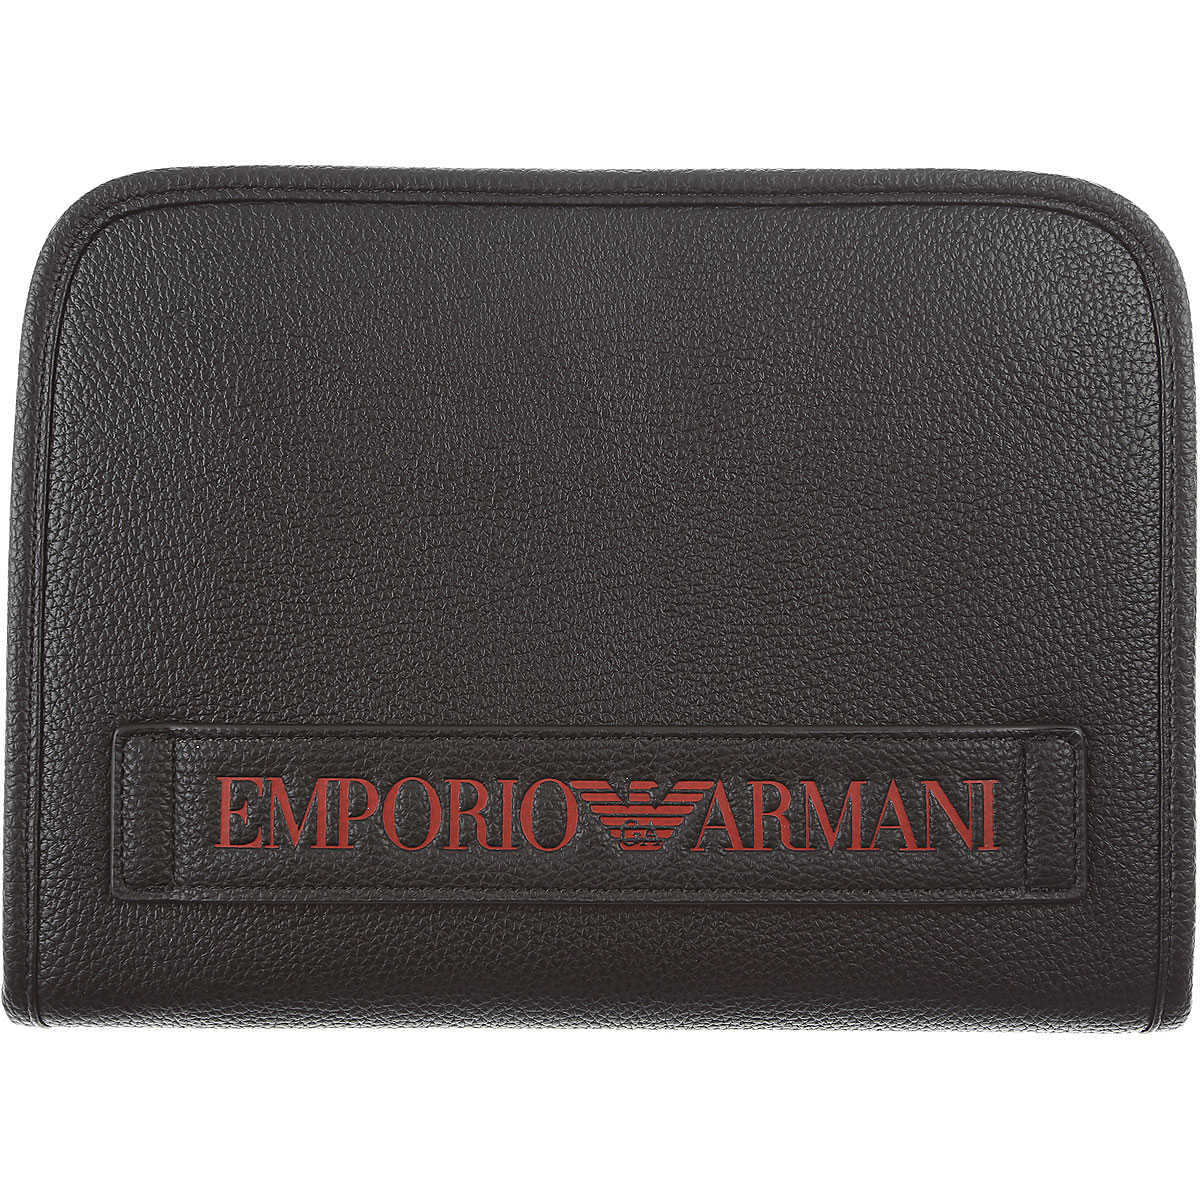 Emporio Armani Wallet for Men On Sale Black DK - GOOFASH - Mens WALLETS